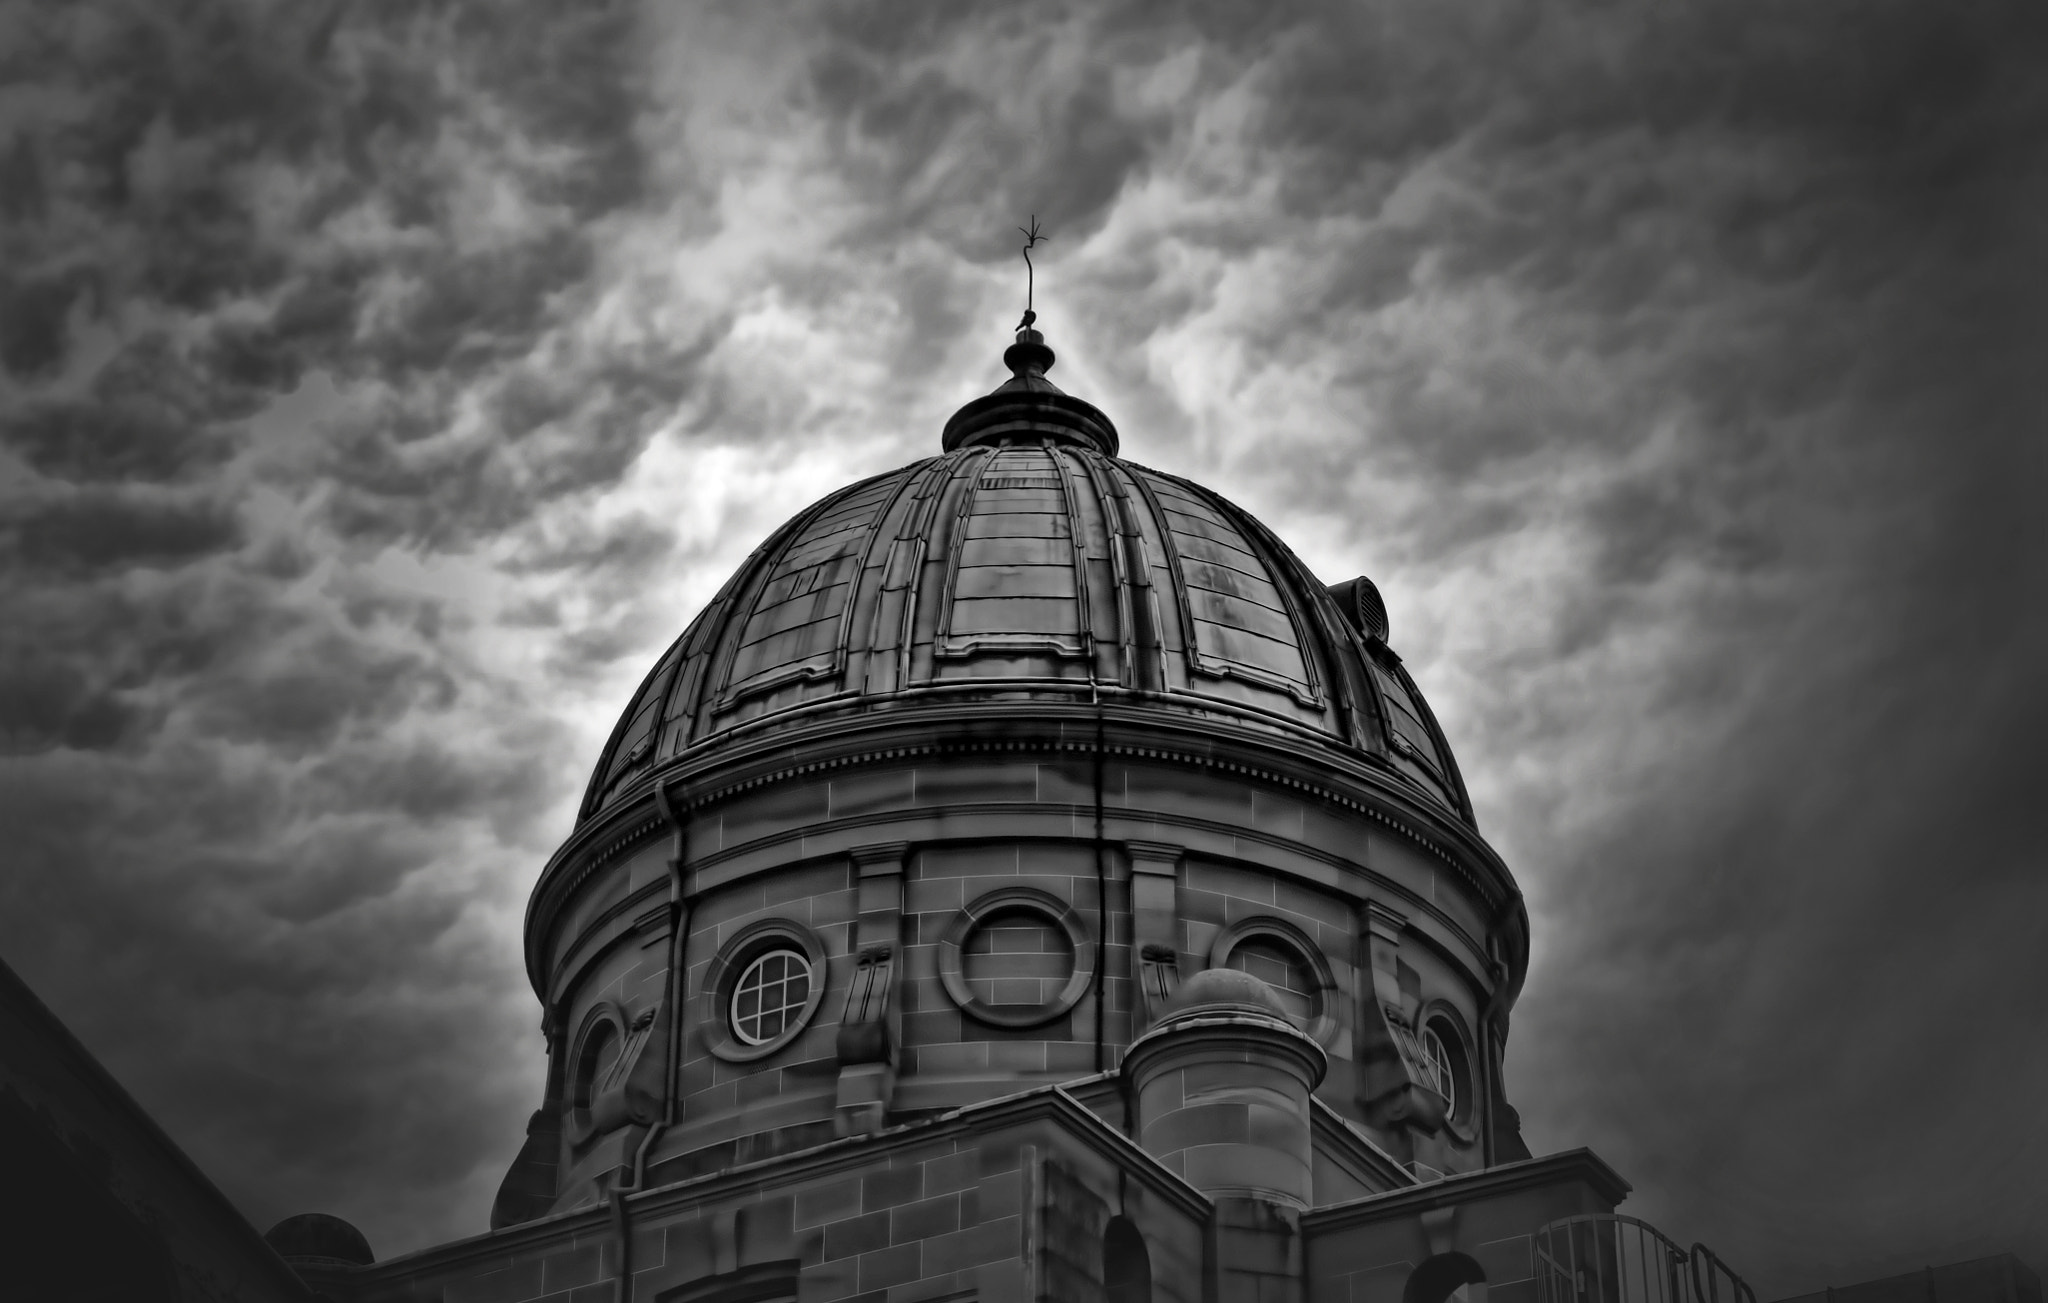 Photograph The Customs House by Alex A. on 500px